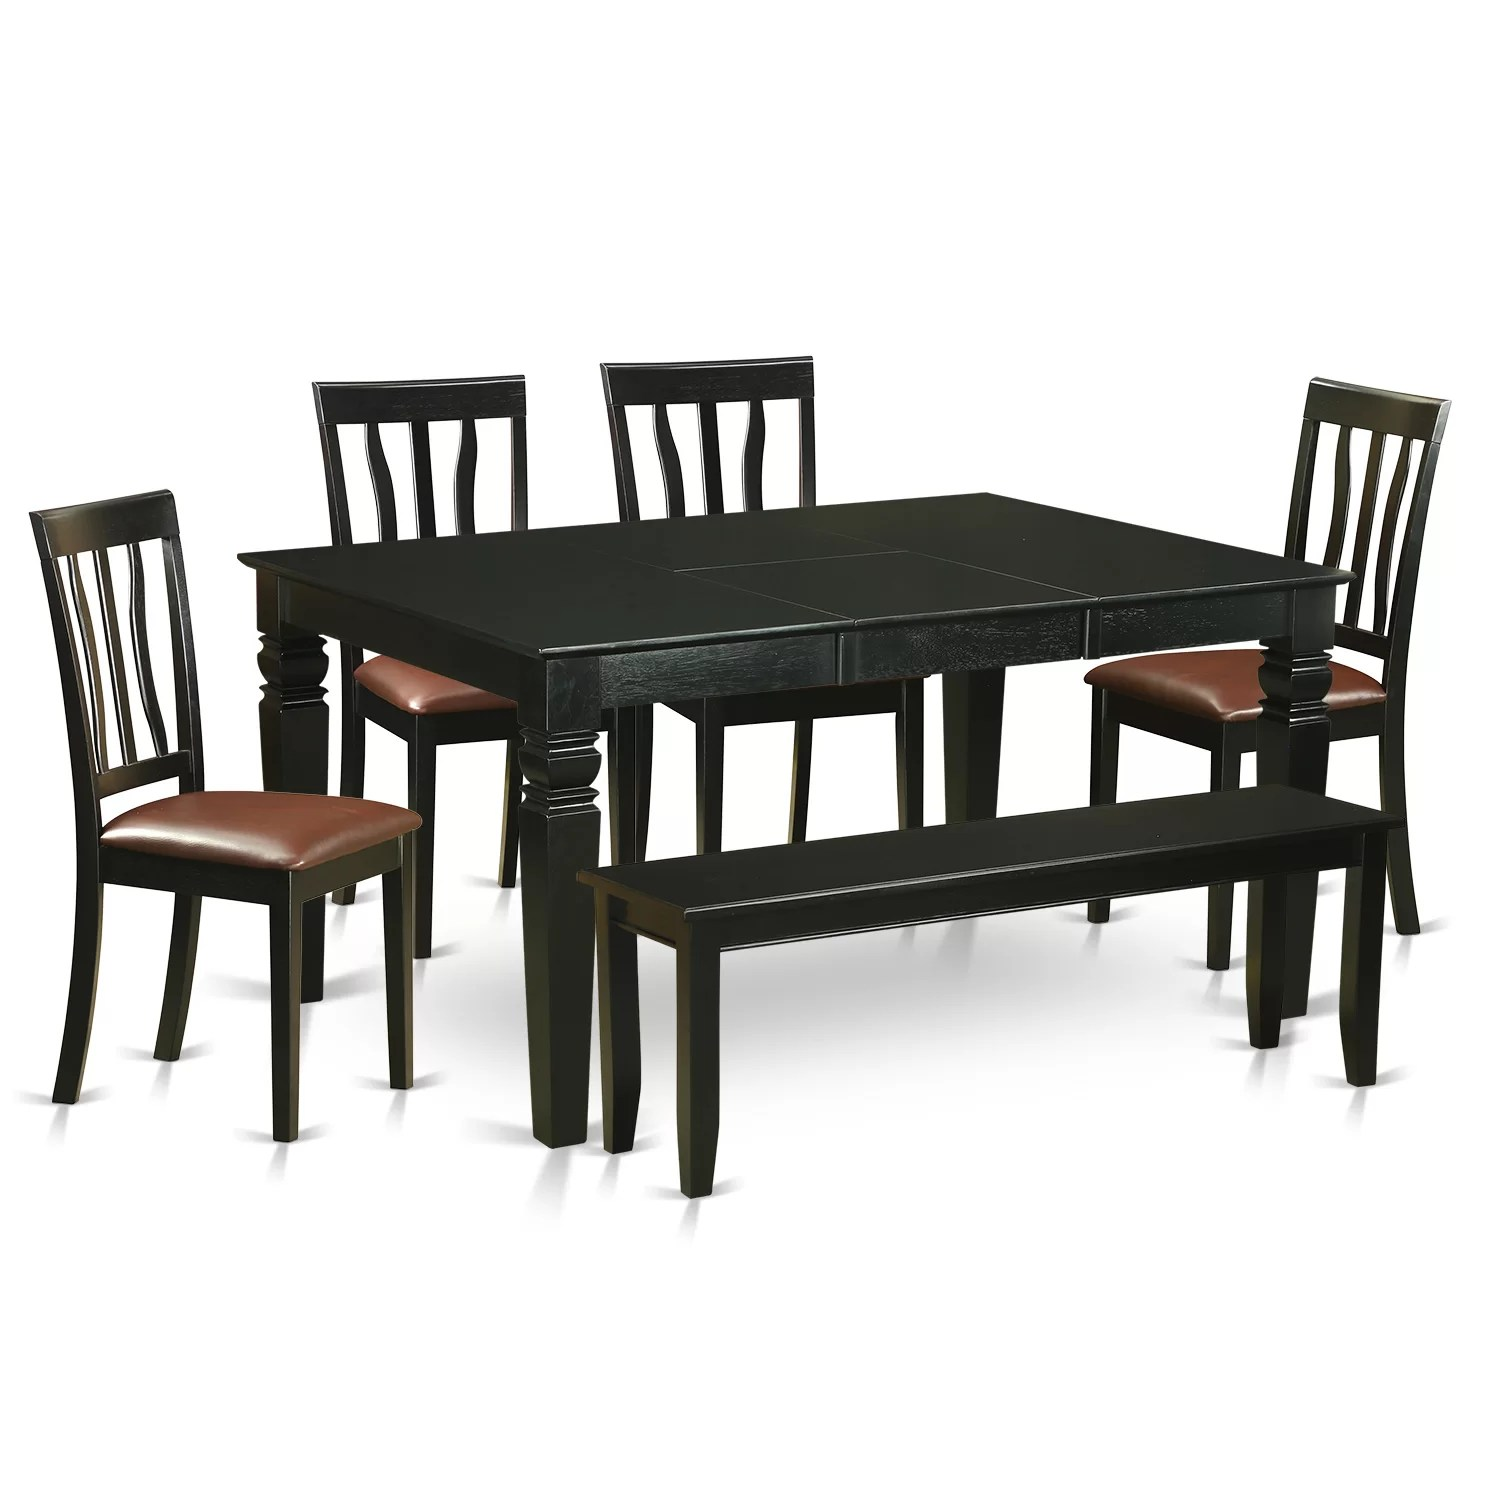 6 Dining Room Chairs Wooden Importers Weston 6 Piece Dining Set Wayfair